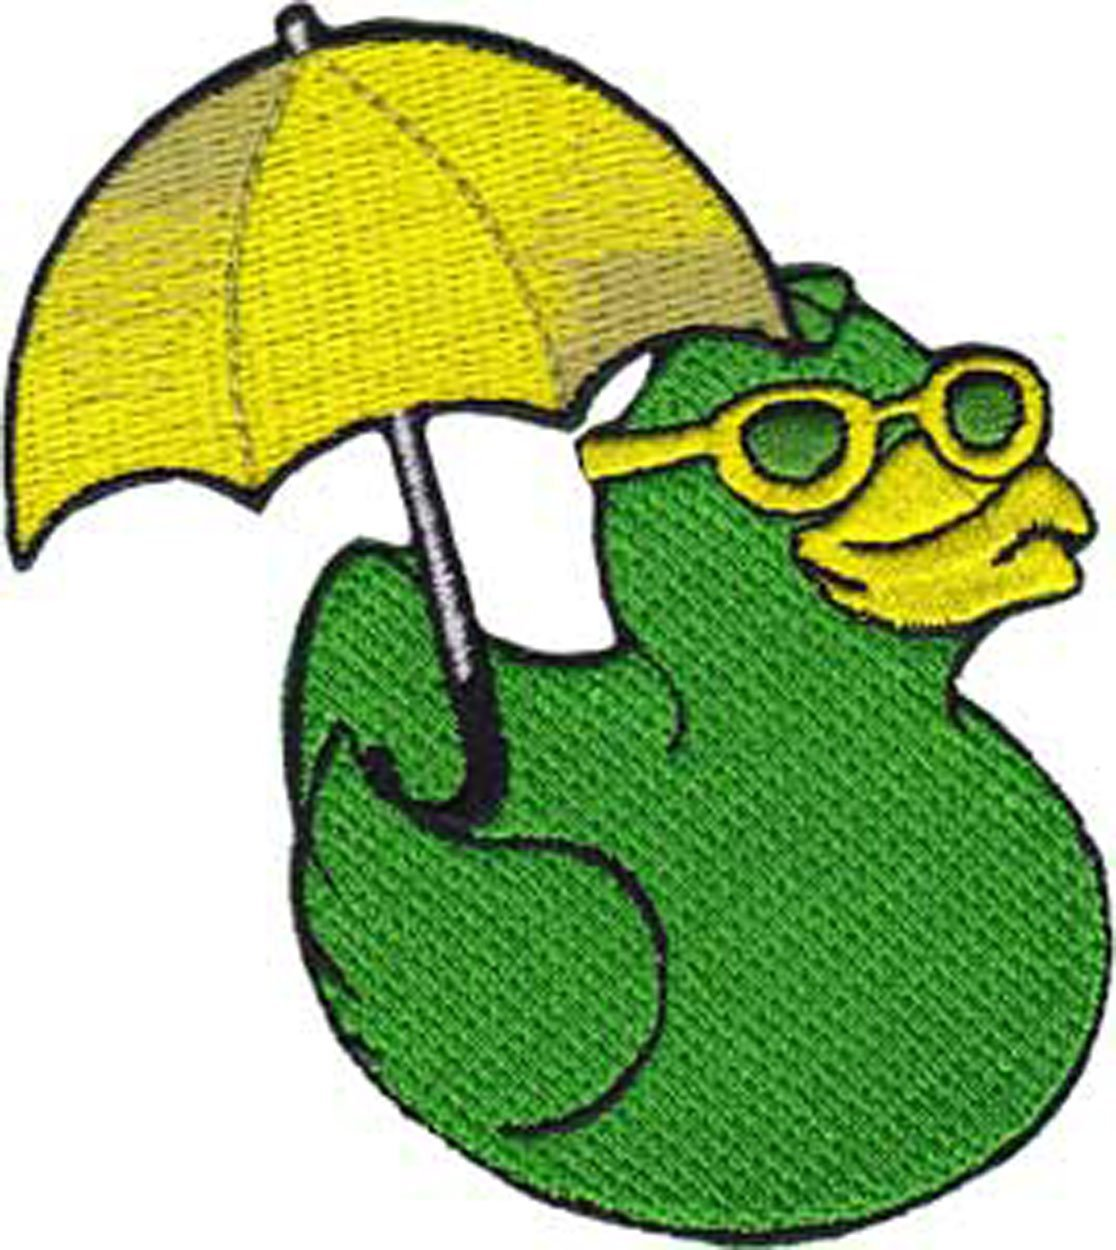 Patch - Animals - Rubber Duck with Umbrellas Iron On Gifts New Licensed p-4078